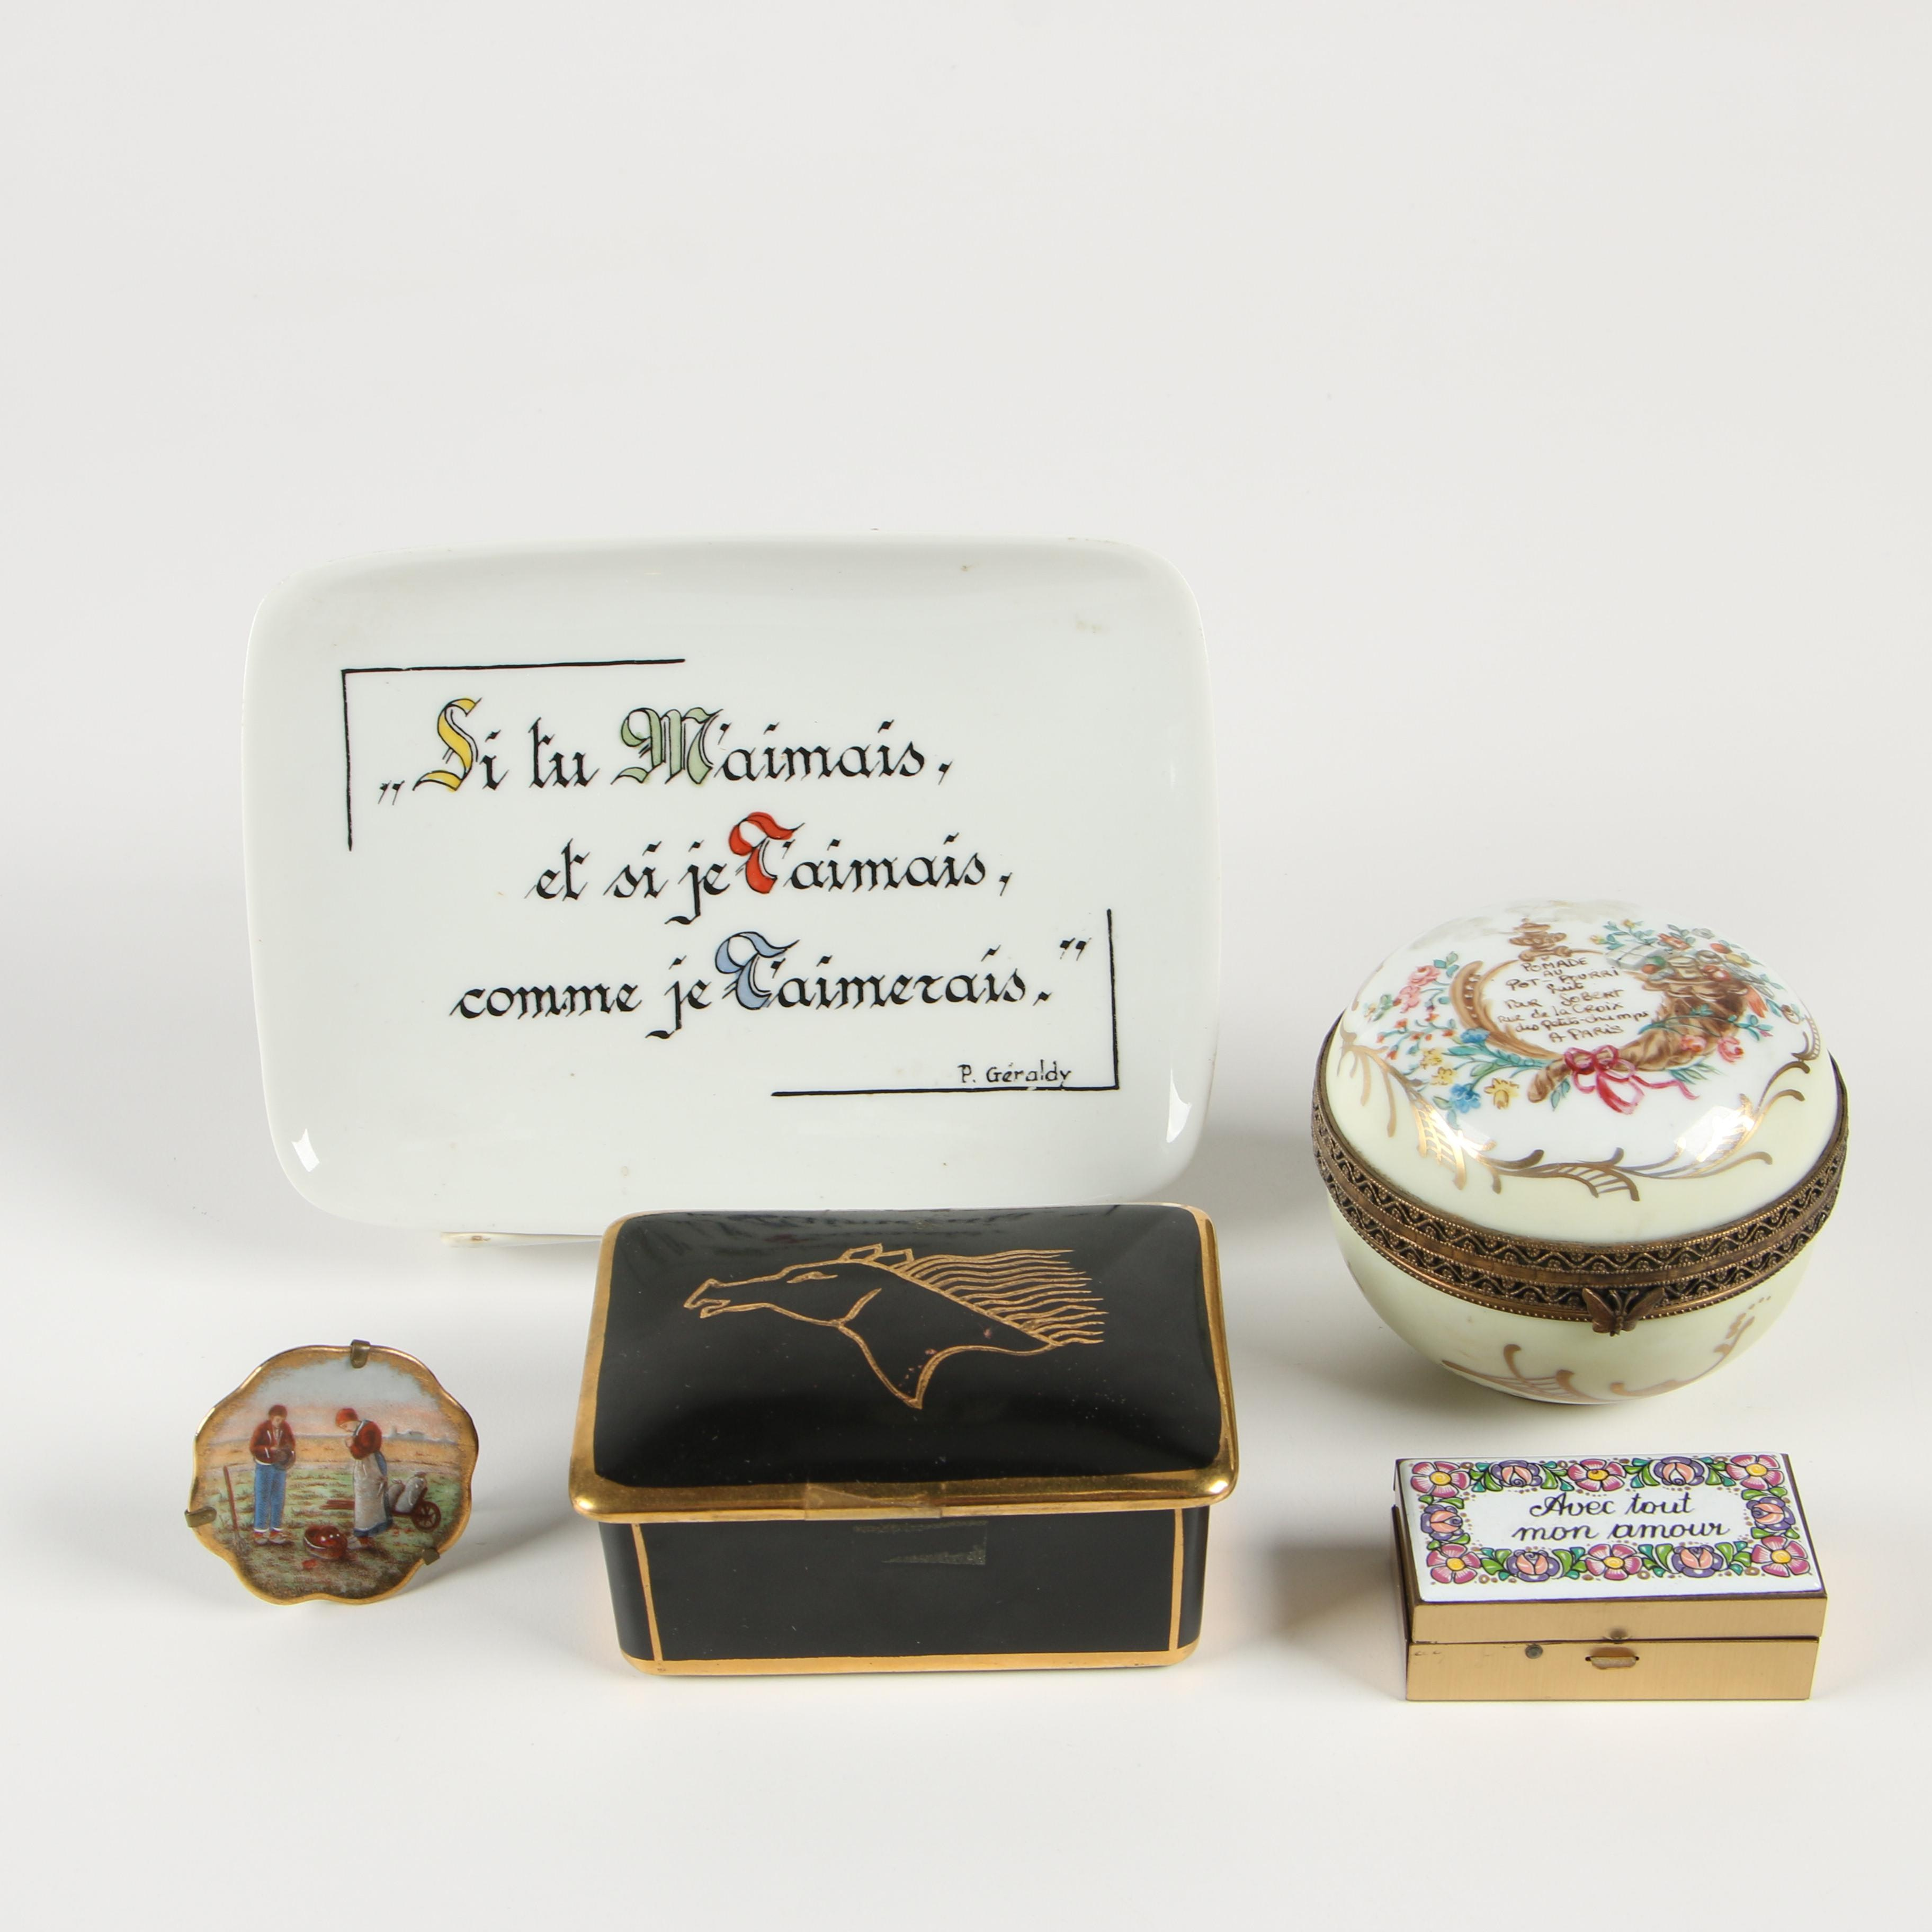 Limoges Porcelain Trinket Boxes, Tray, and More